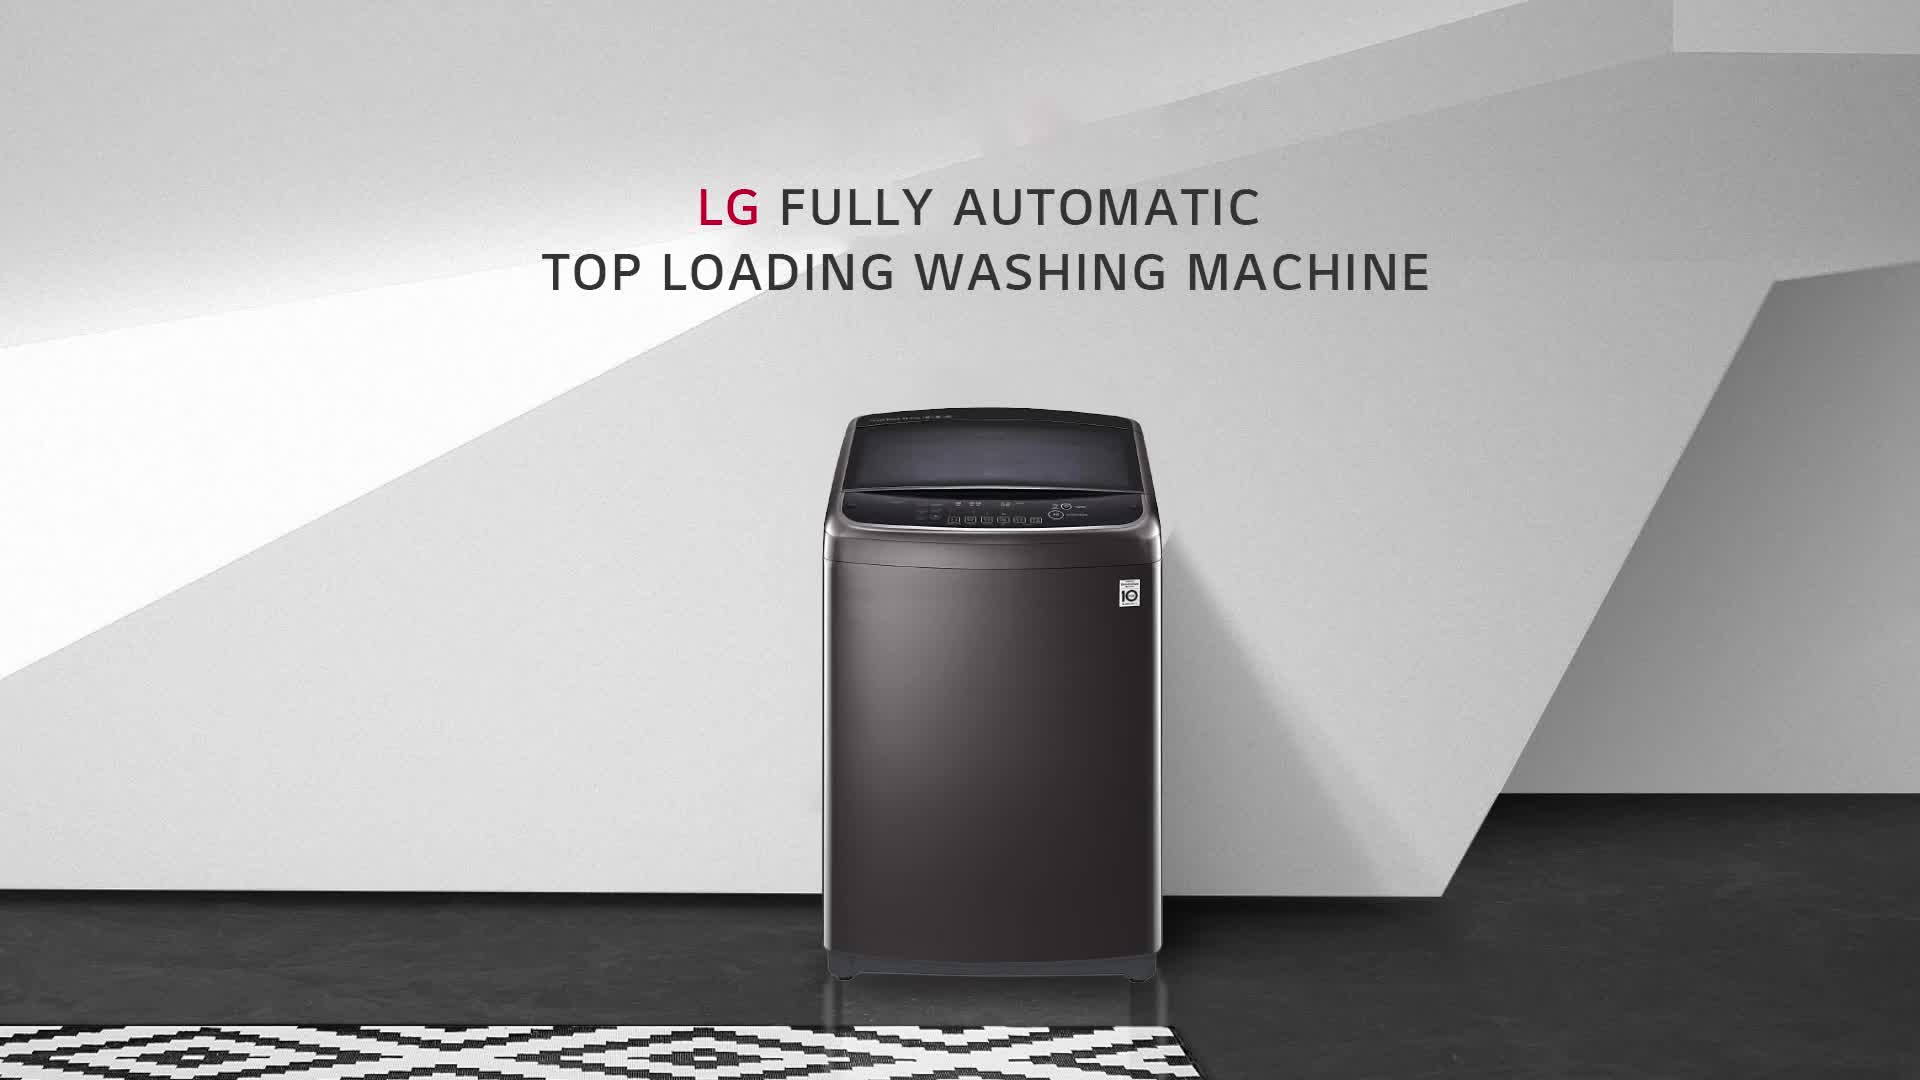 LG 6.2 kg Inverter Fully-Automatic Top Loading Washing Machine ( T7288NDDLG.ASFPEIL, Middle Free Silver) 2021 June Fully-automatic top load washing machine: Affordable with great wash quality, Easy to use Capacity 6.2 Kg : Suitable for bachelors & couples Manufacturer Warranty: 2 years on product and 10 years on motor*T&C